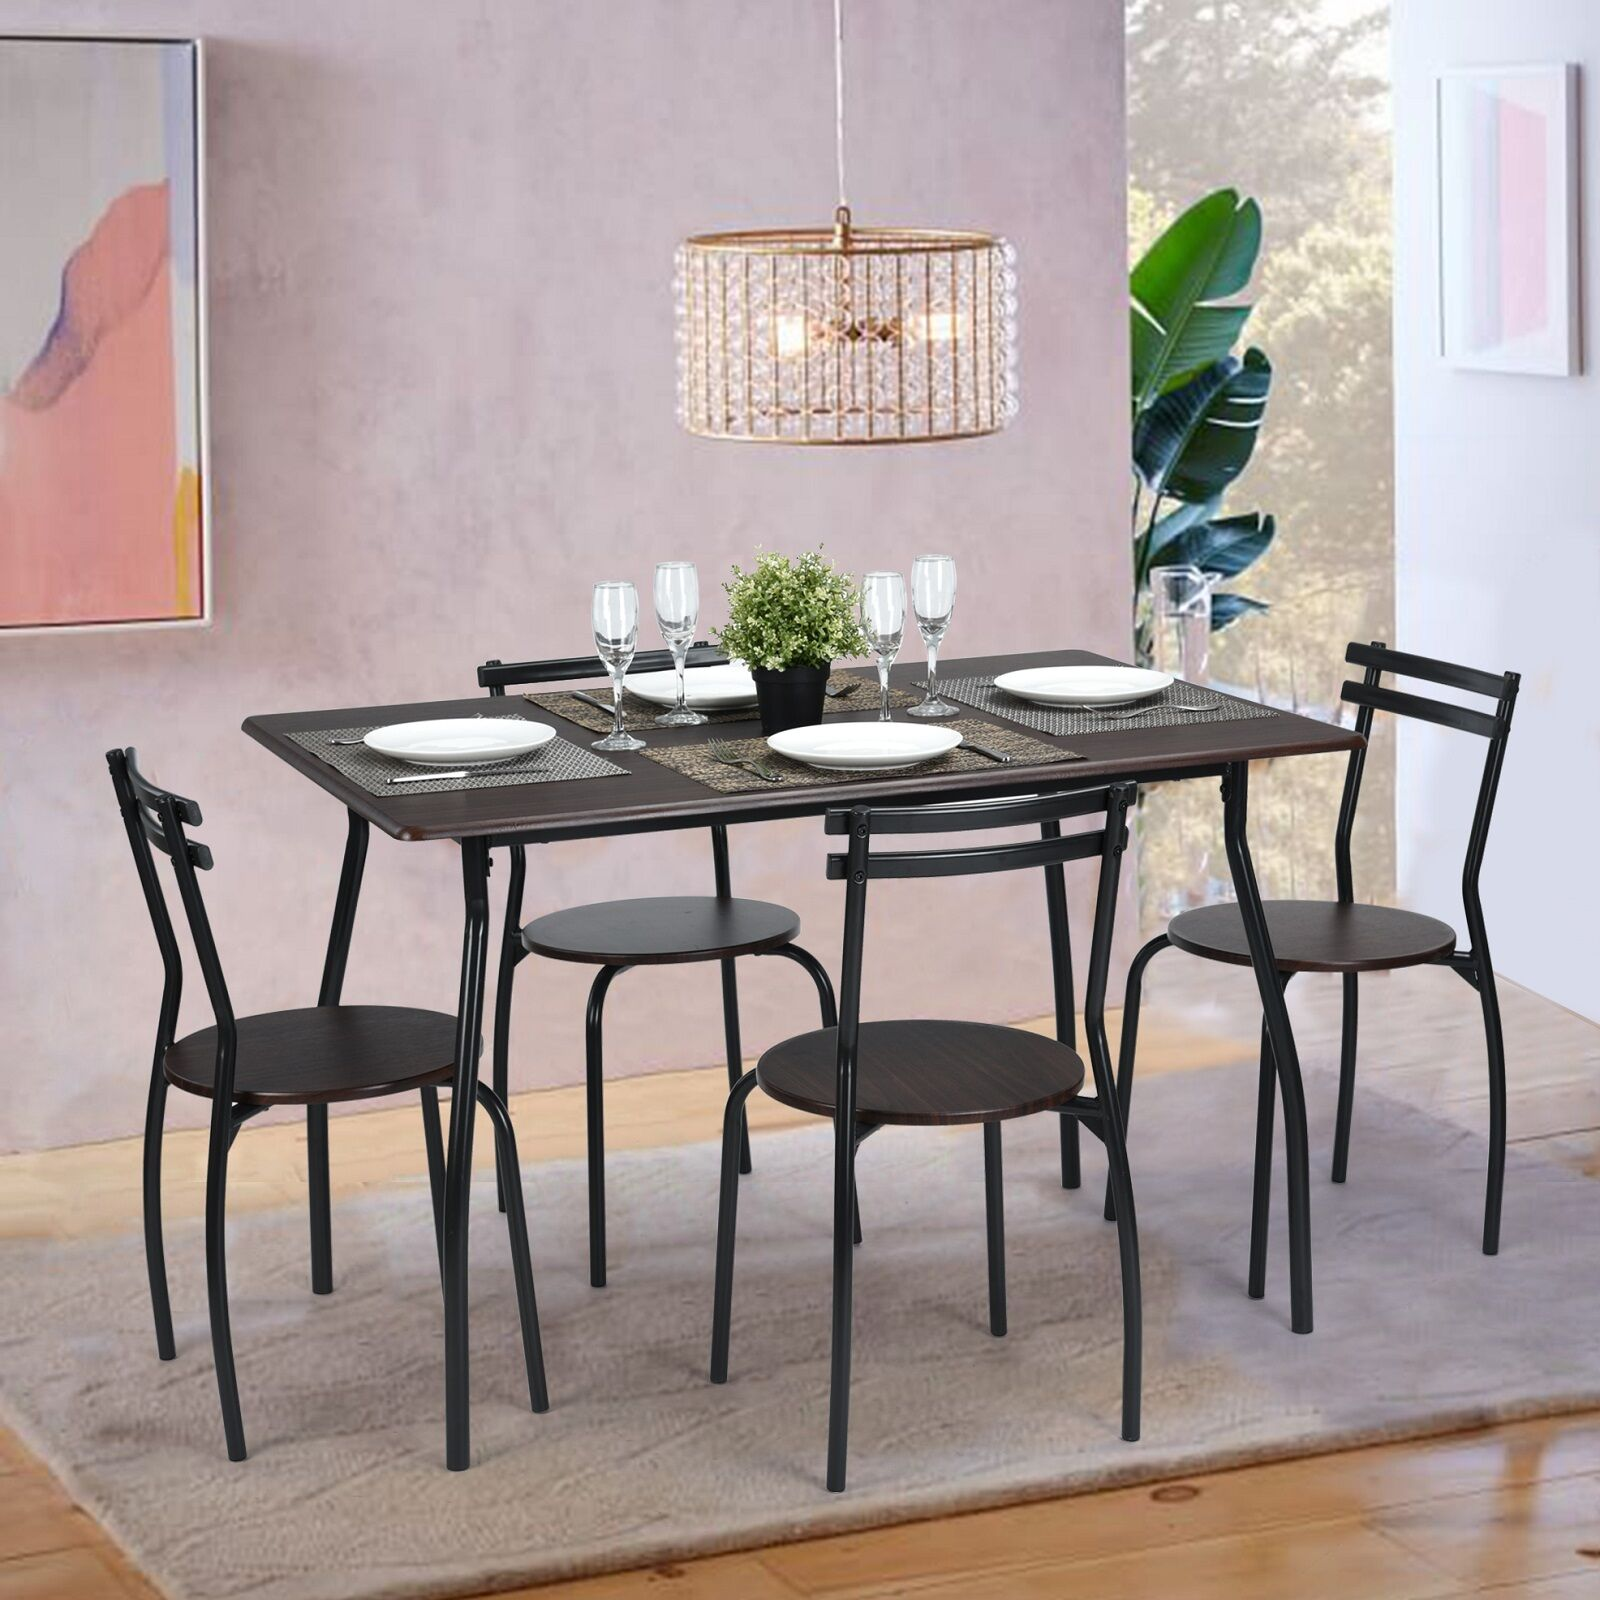 5pcs dining table and 4 chairs home table seat kitchen set country